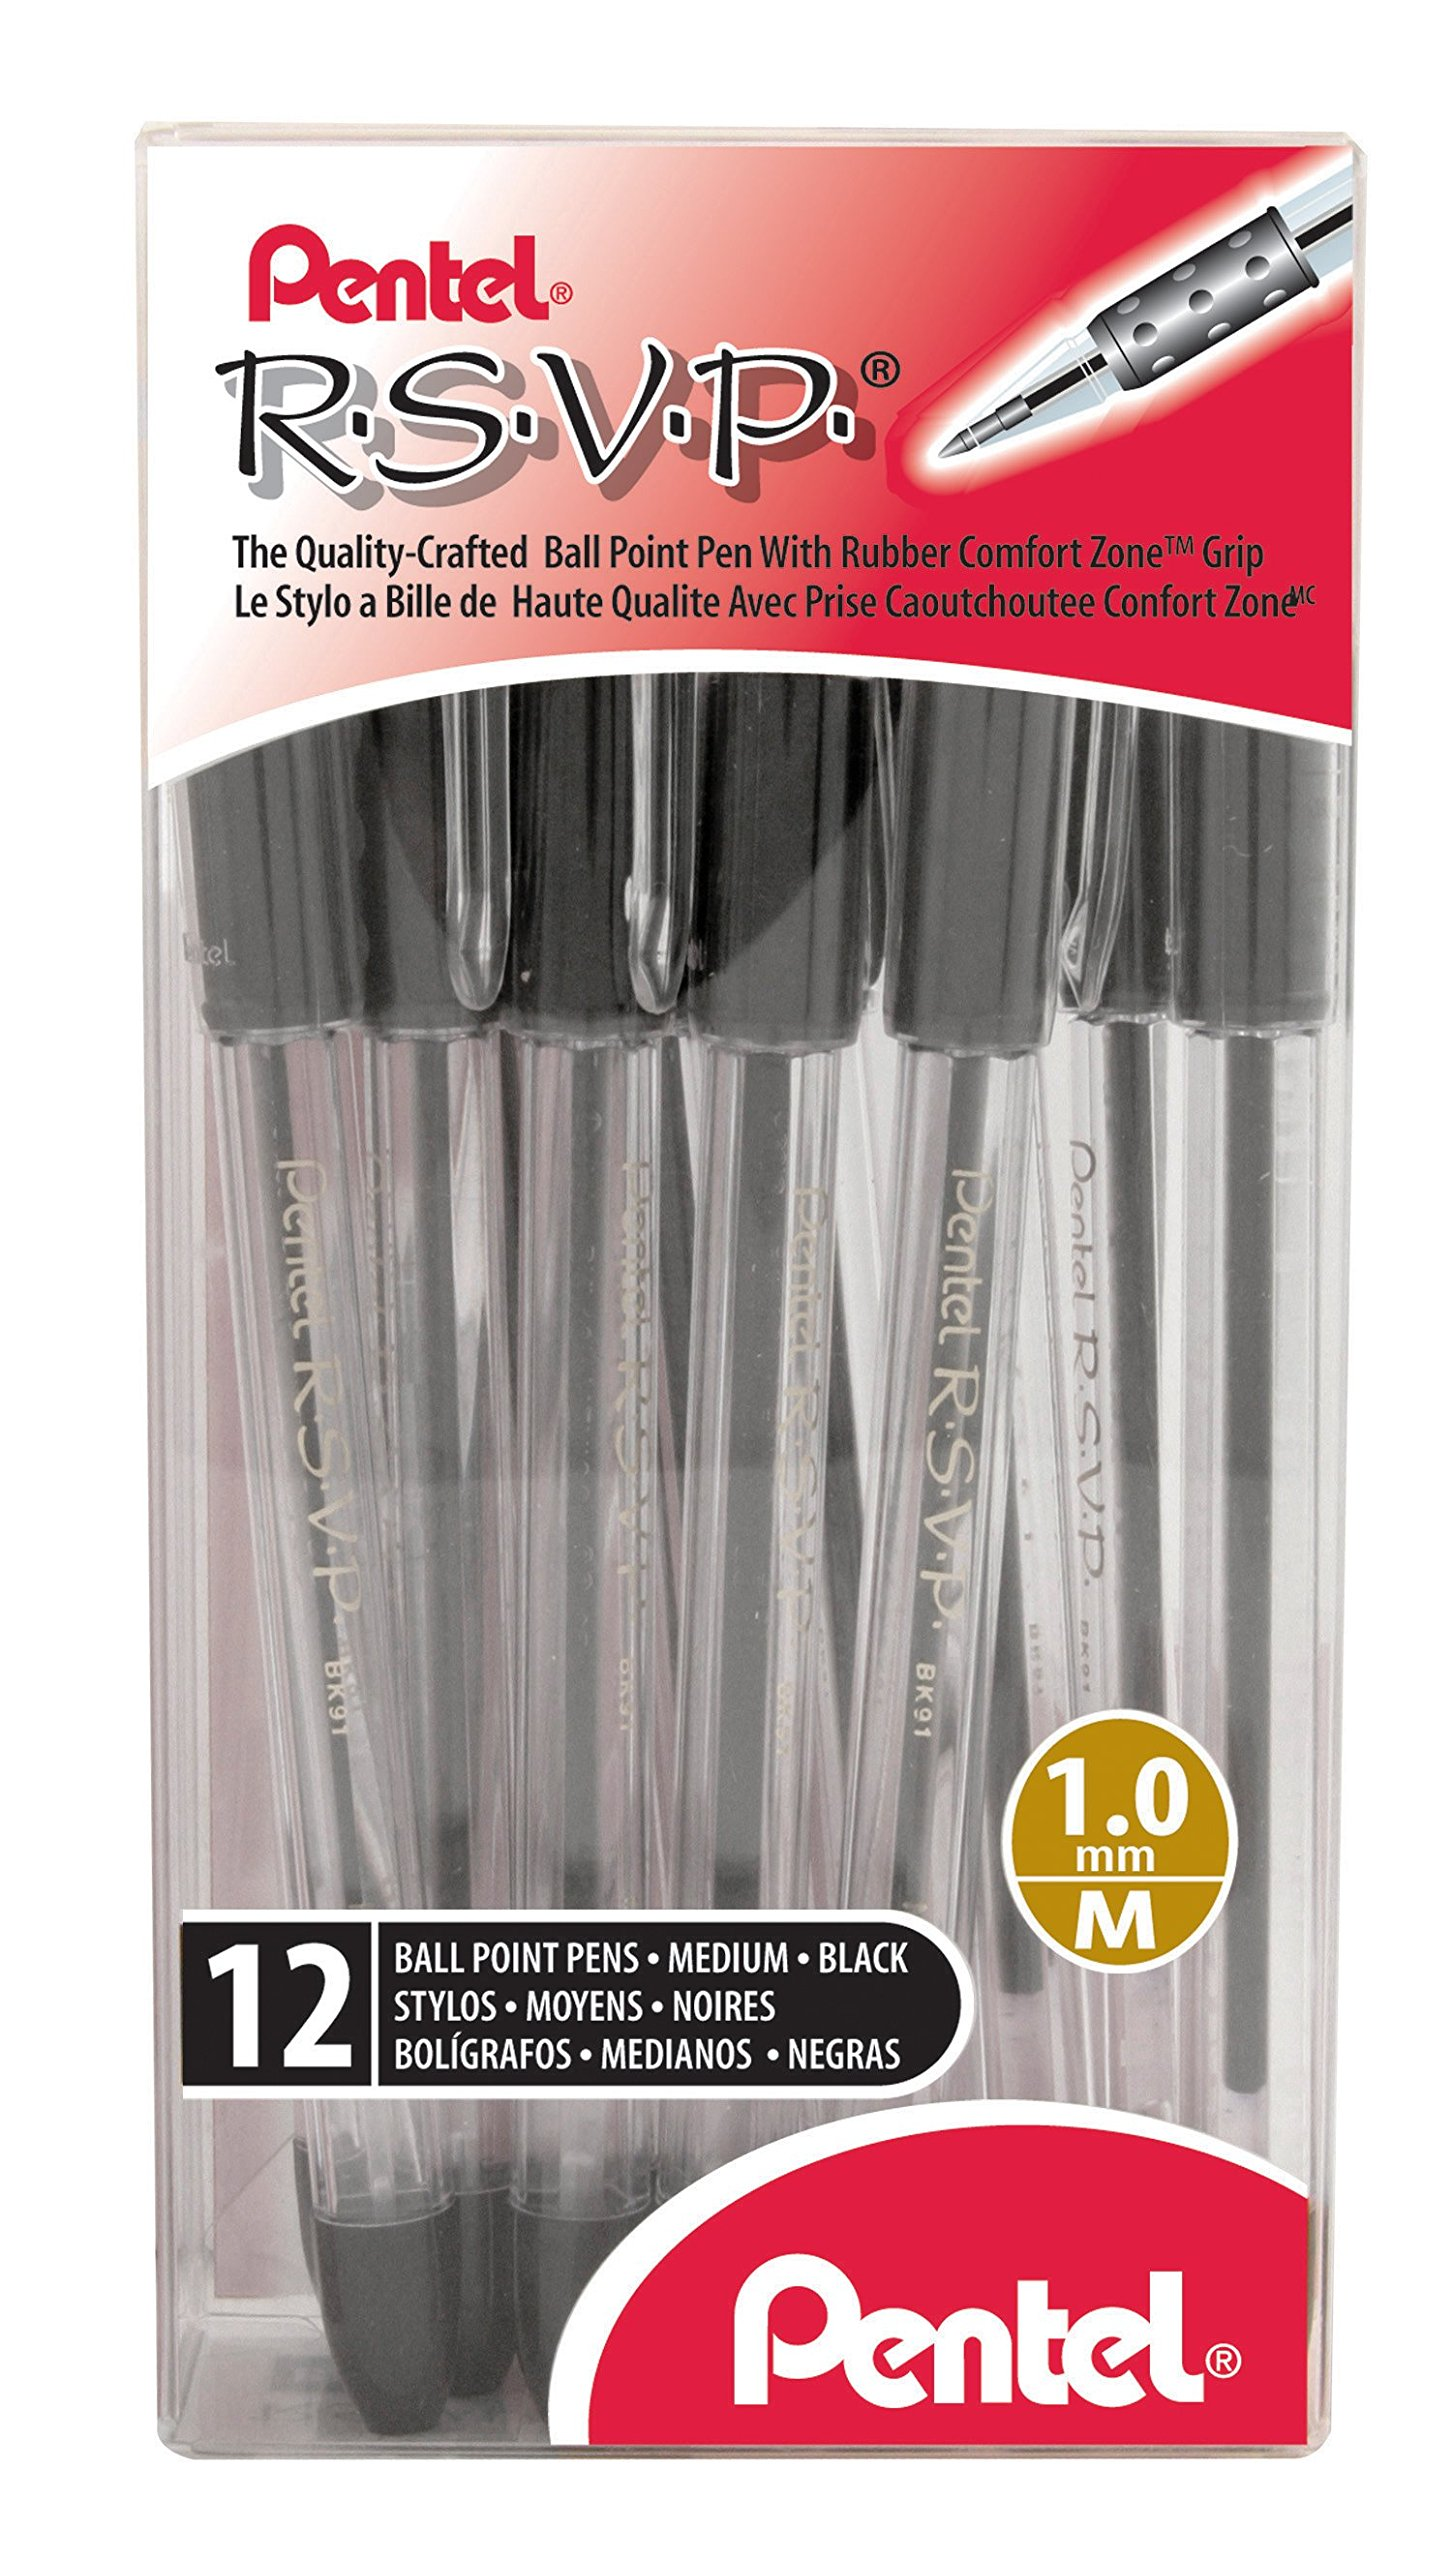 12 x Pentel R.S.V.P. Ball Point Pen, Medium Line, Black Ink